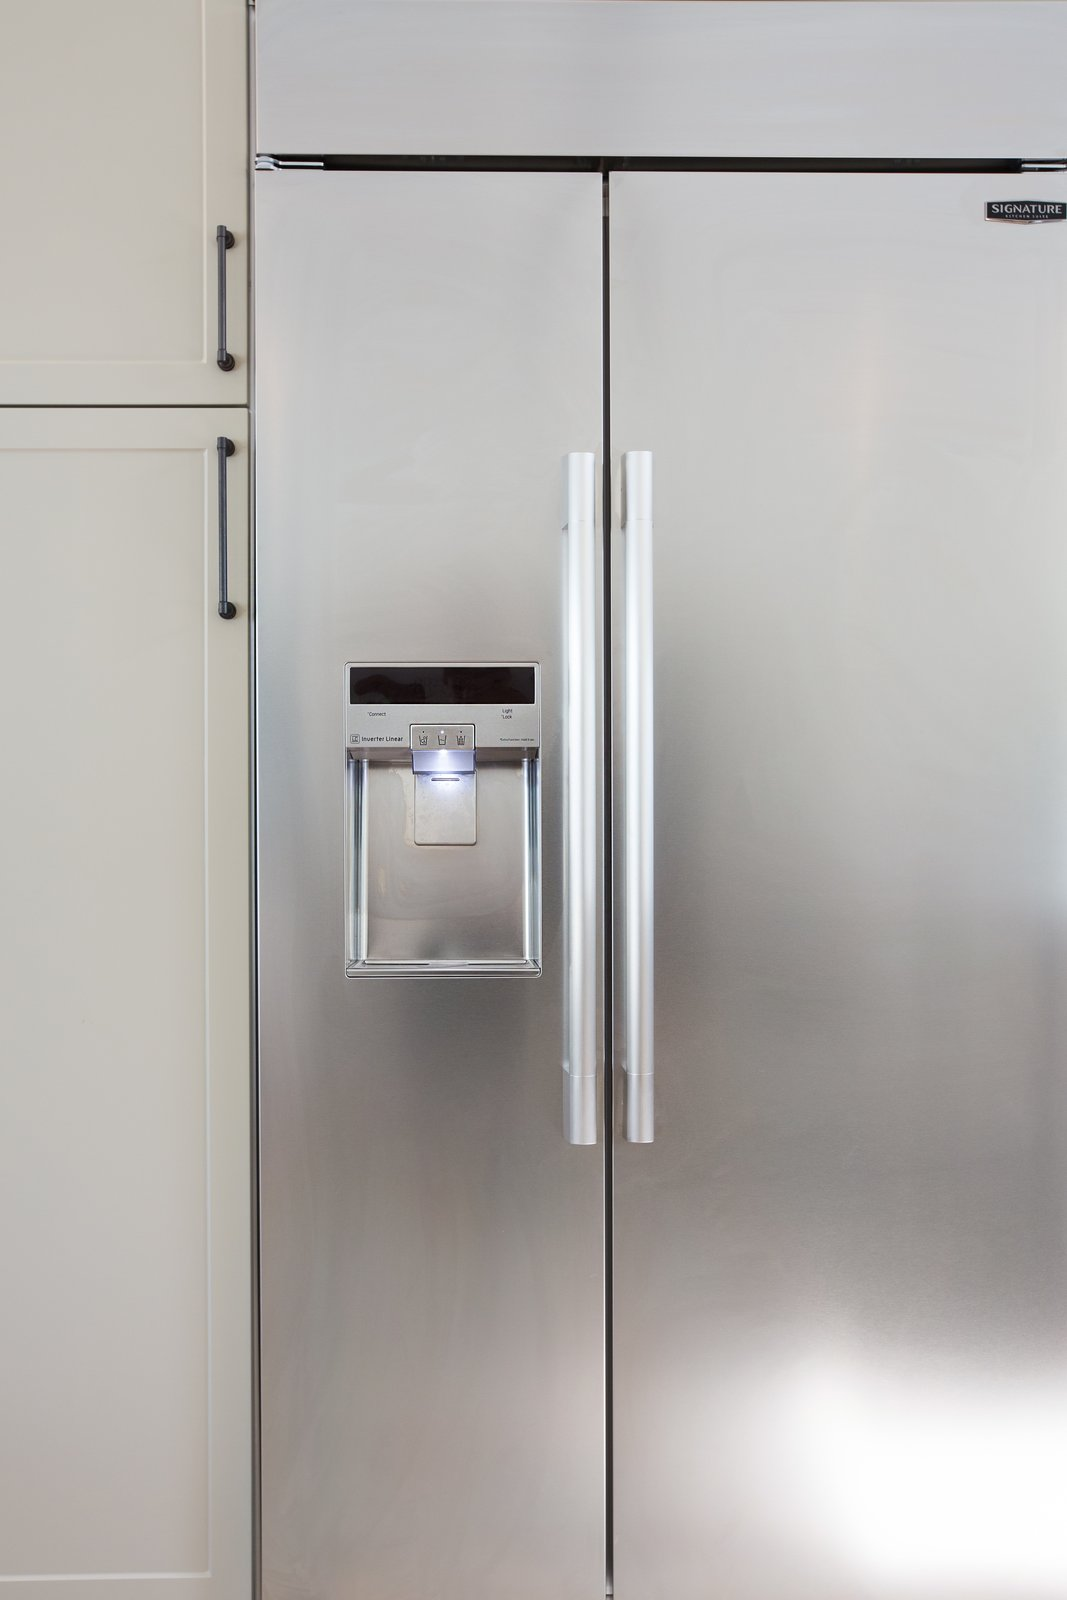 "Lewis also installed the 42"" Built-In Side-By-Side Refrigerator, which features a SmartSpace™ system that embeds the ice dispenser in the freezer door, freeing up storage space. The adjustable cantilevered shelves add even more capacity and move with a touch of a button. In keeping with the sleek aesthetic of the kitchen, the fridge also has an LED touch control panel. Lewis can use her phone to monitor energy use, delay defrosting, and check on the fridge's performance with Smart Diagnosis.dd a caption  Photo 6 of 8 in A Sneak Peek Into an Interior Designer's ""No Ordinary Kitchen"" Renovation"